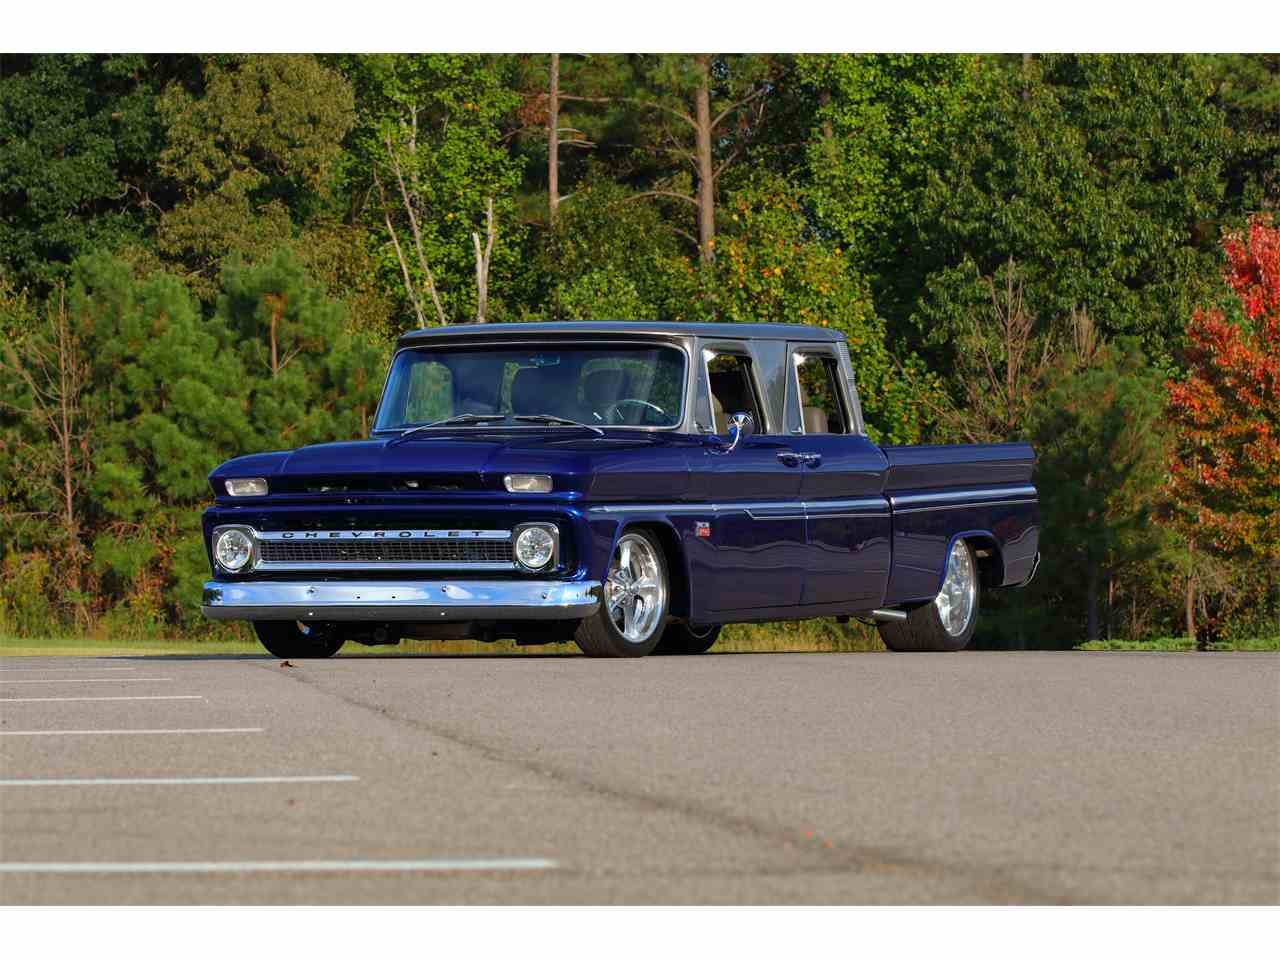 Truck 1965 chevrolet truck : 1965 Chevrolet Pickup for Sale on ClassicCars.com